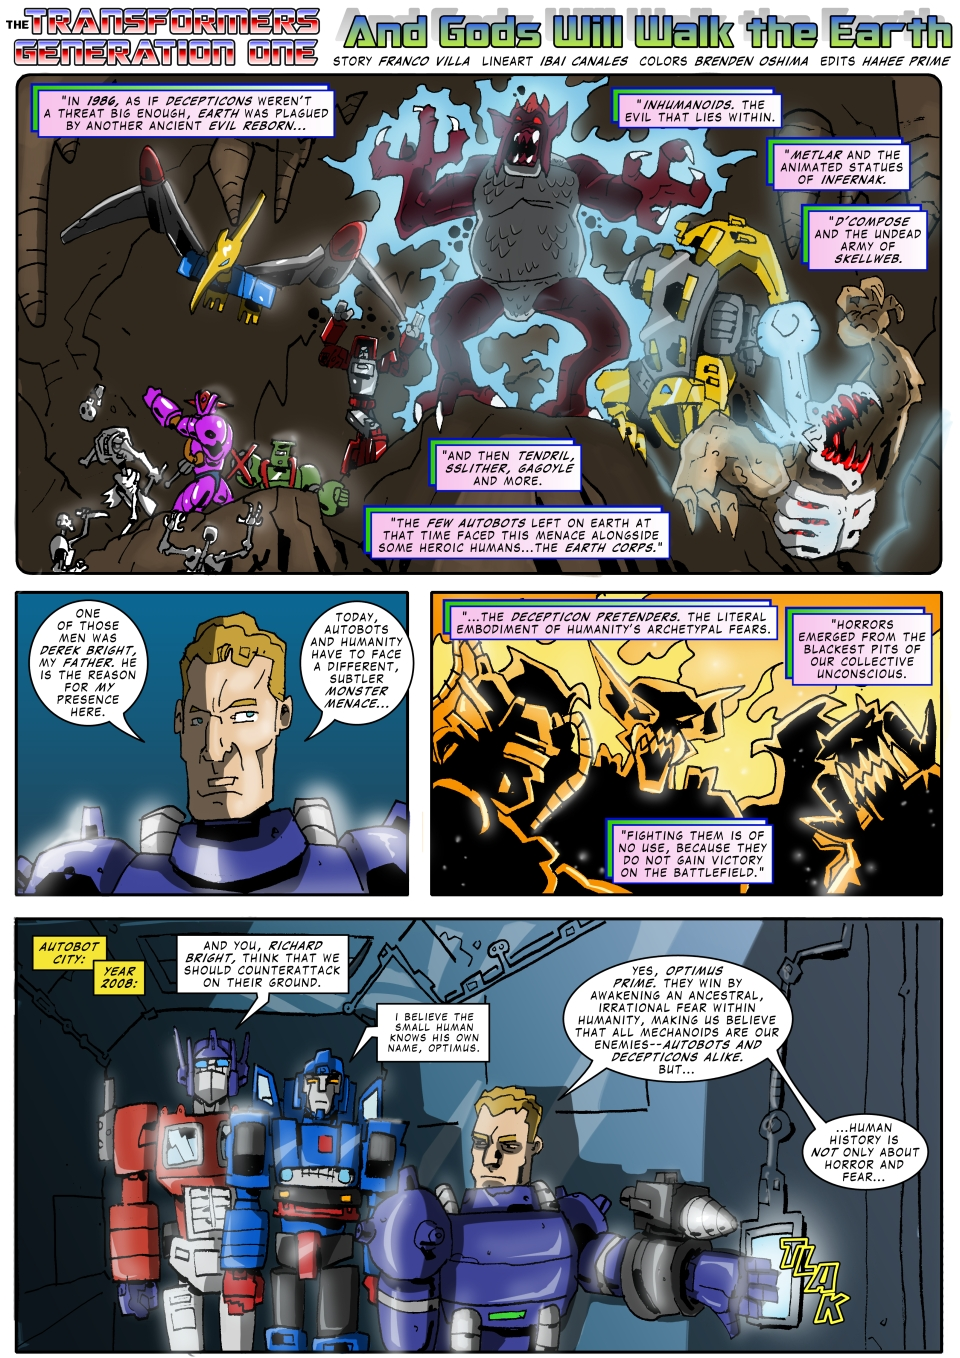 G1 - And Gods Will Walk the Earth - p01 - ENG